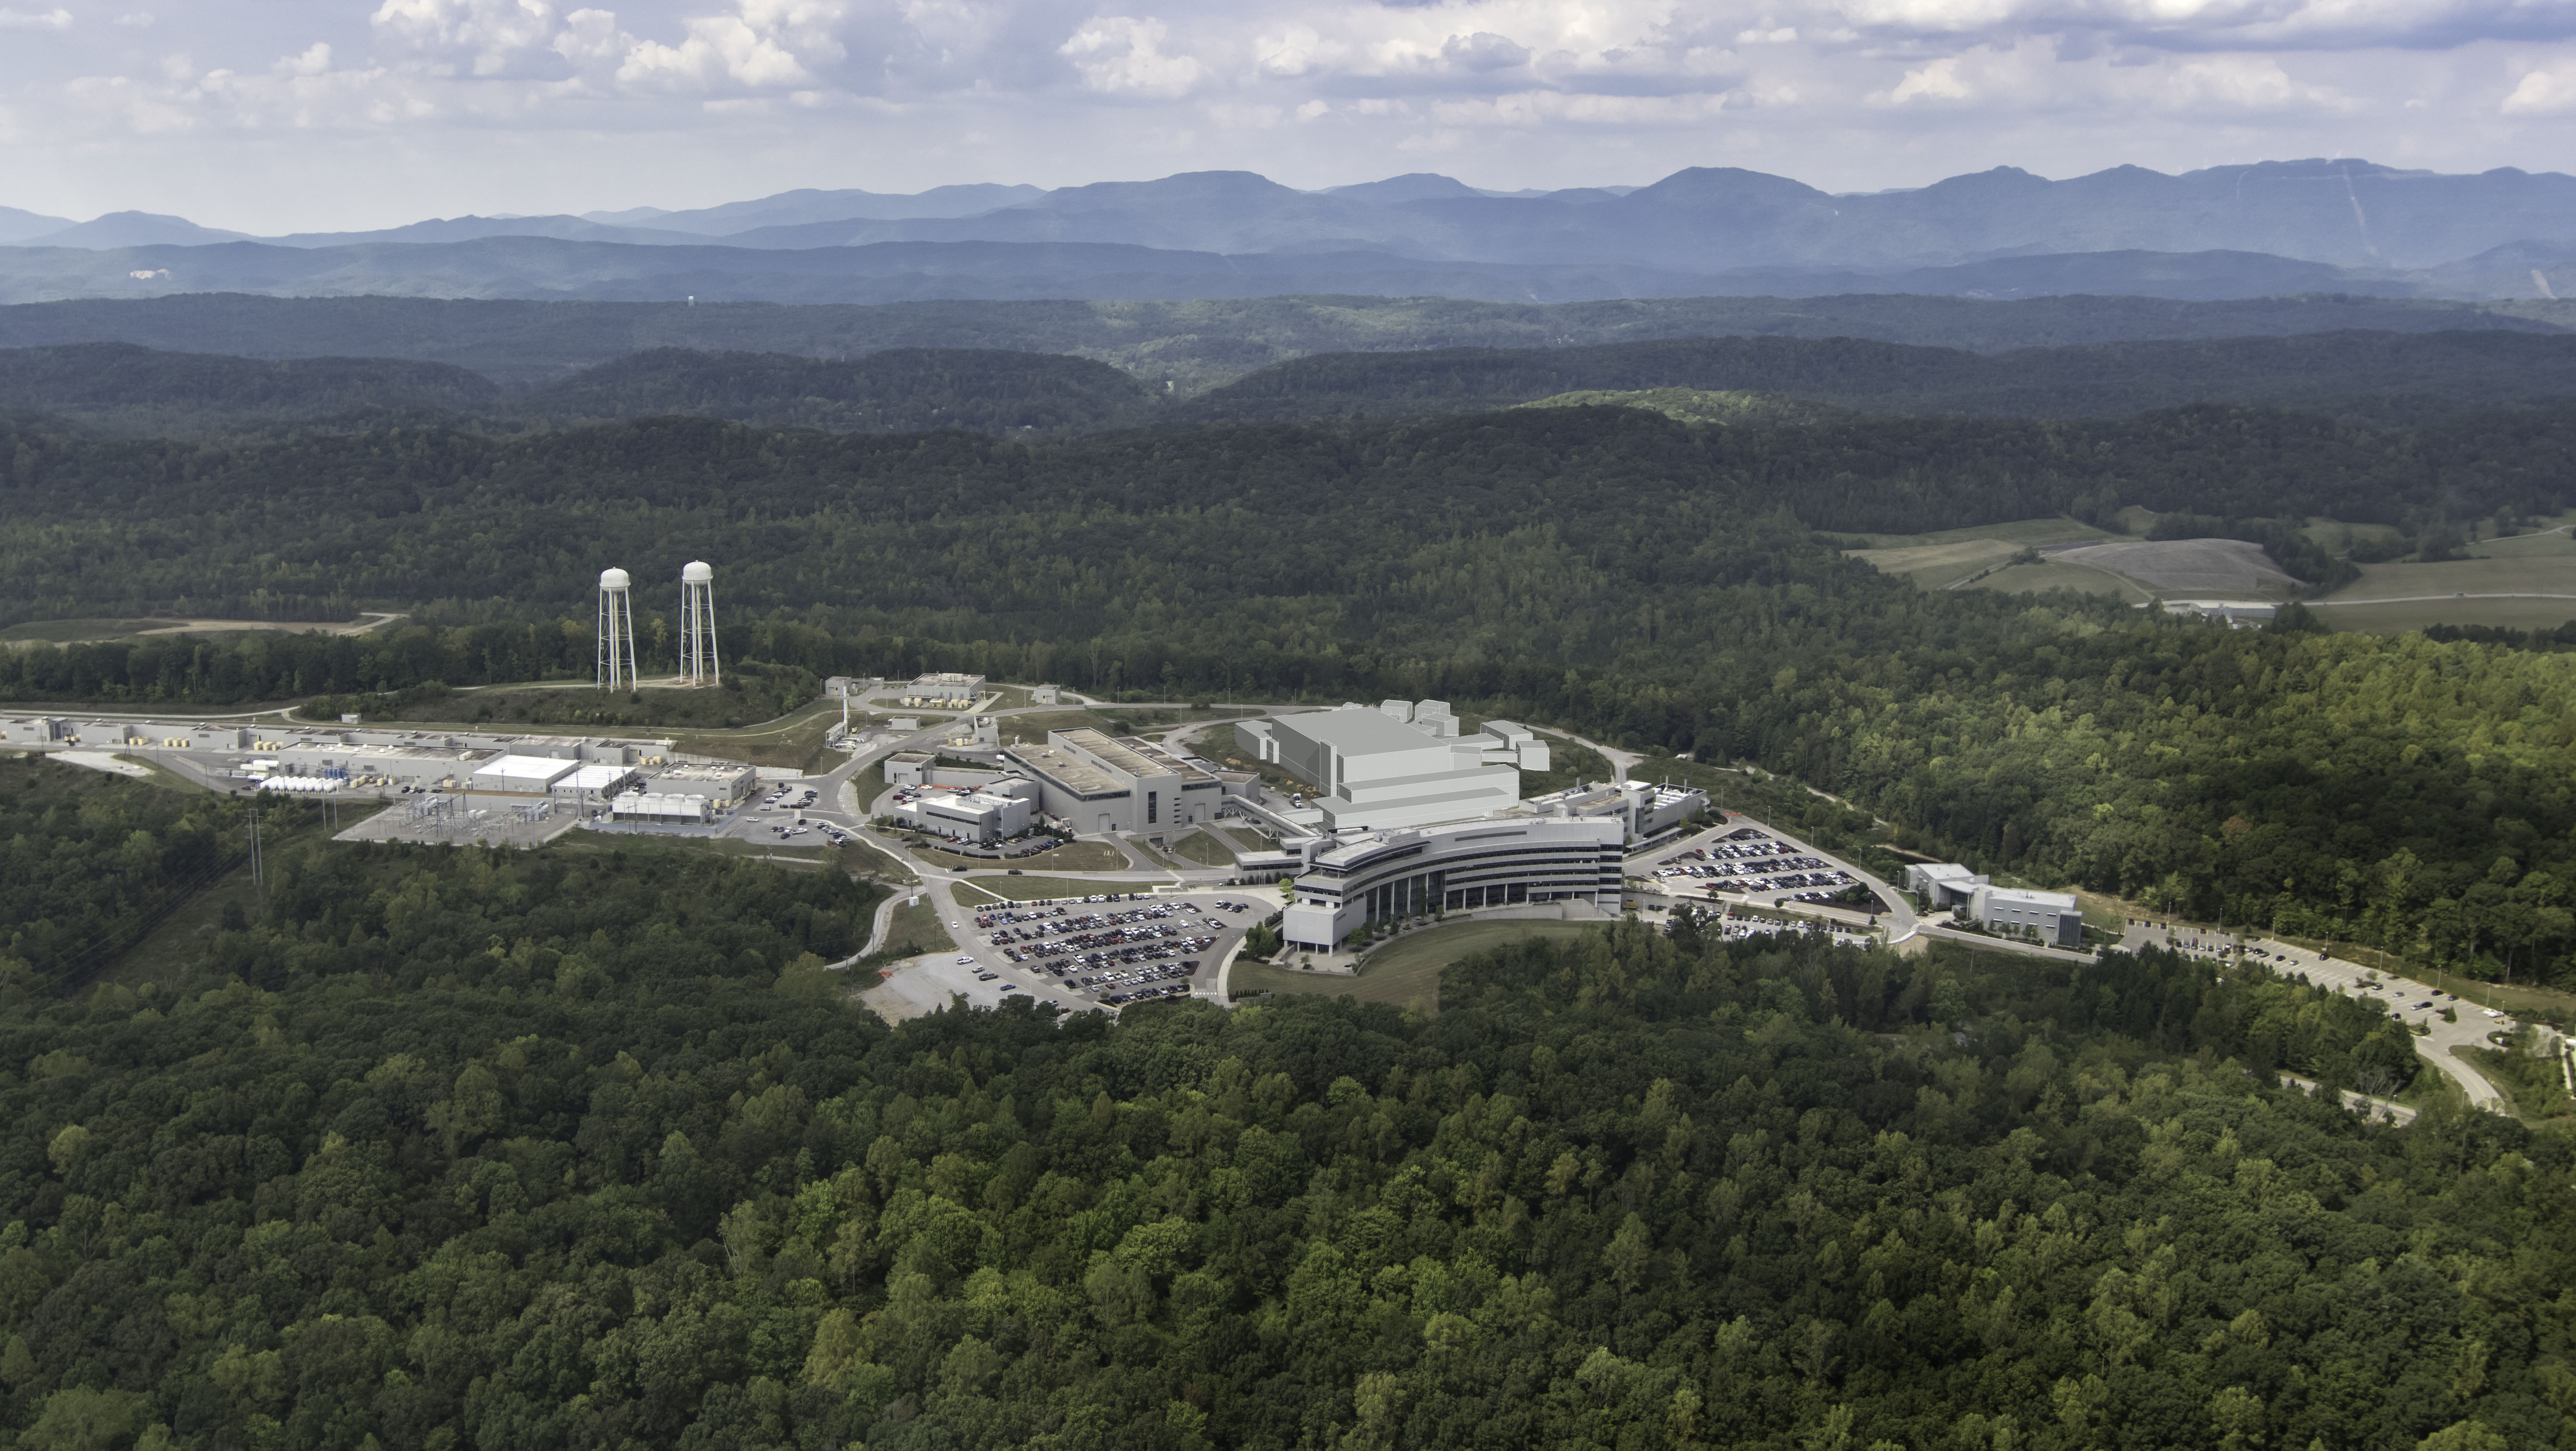 ORNL's Second Target Station (STS) will be located adjacent to the SNS First Target Station